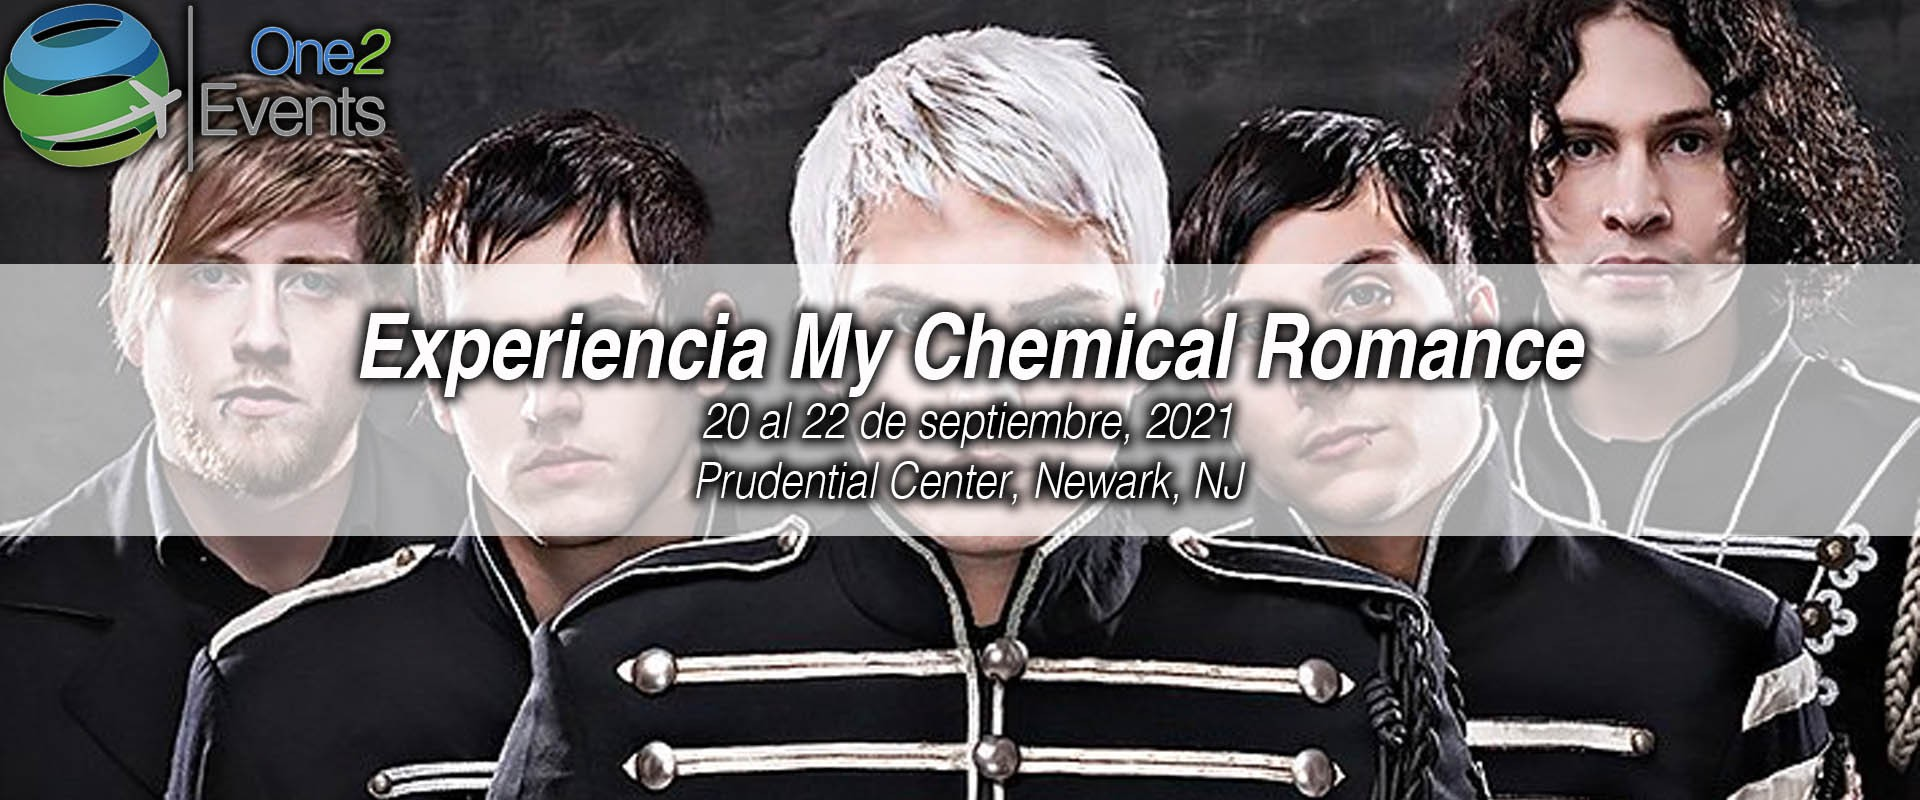 Concierto My Chemical Romance en American Airlines Center, Dallas